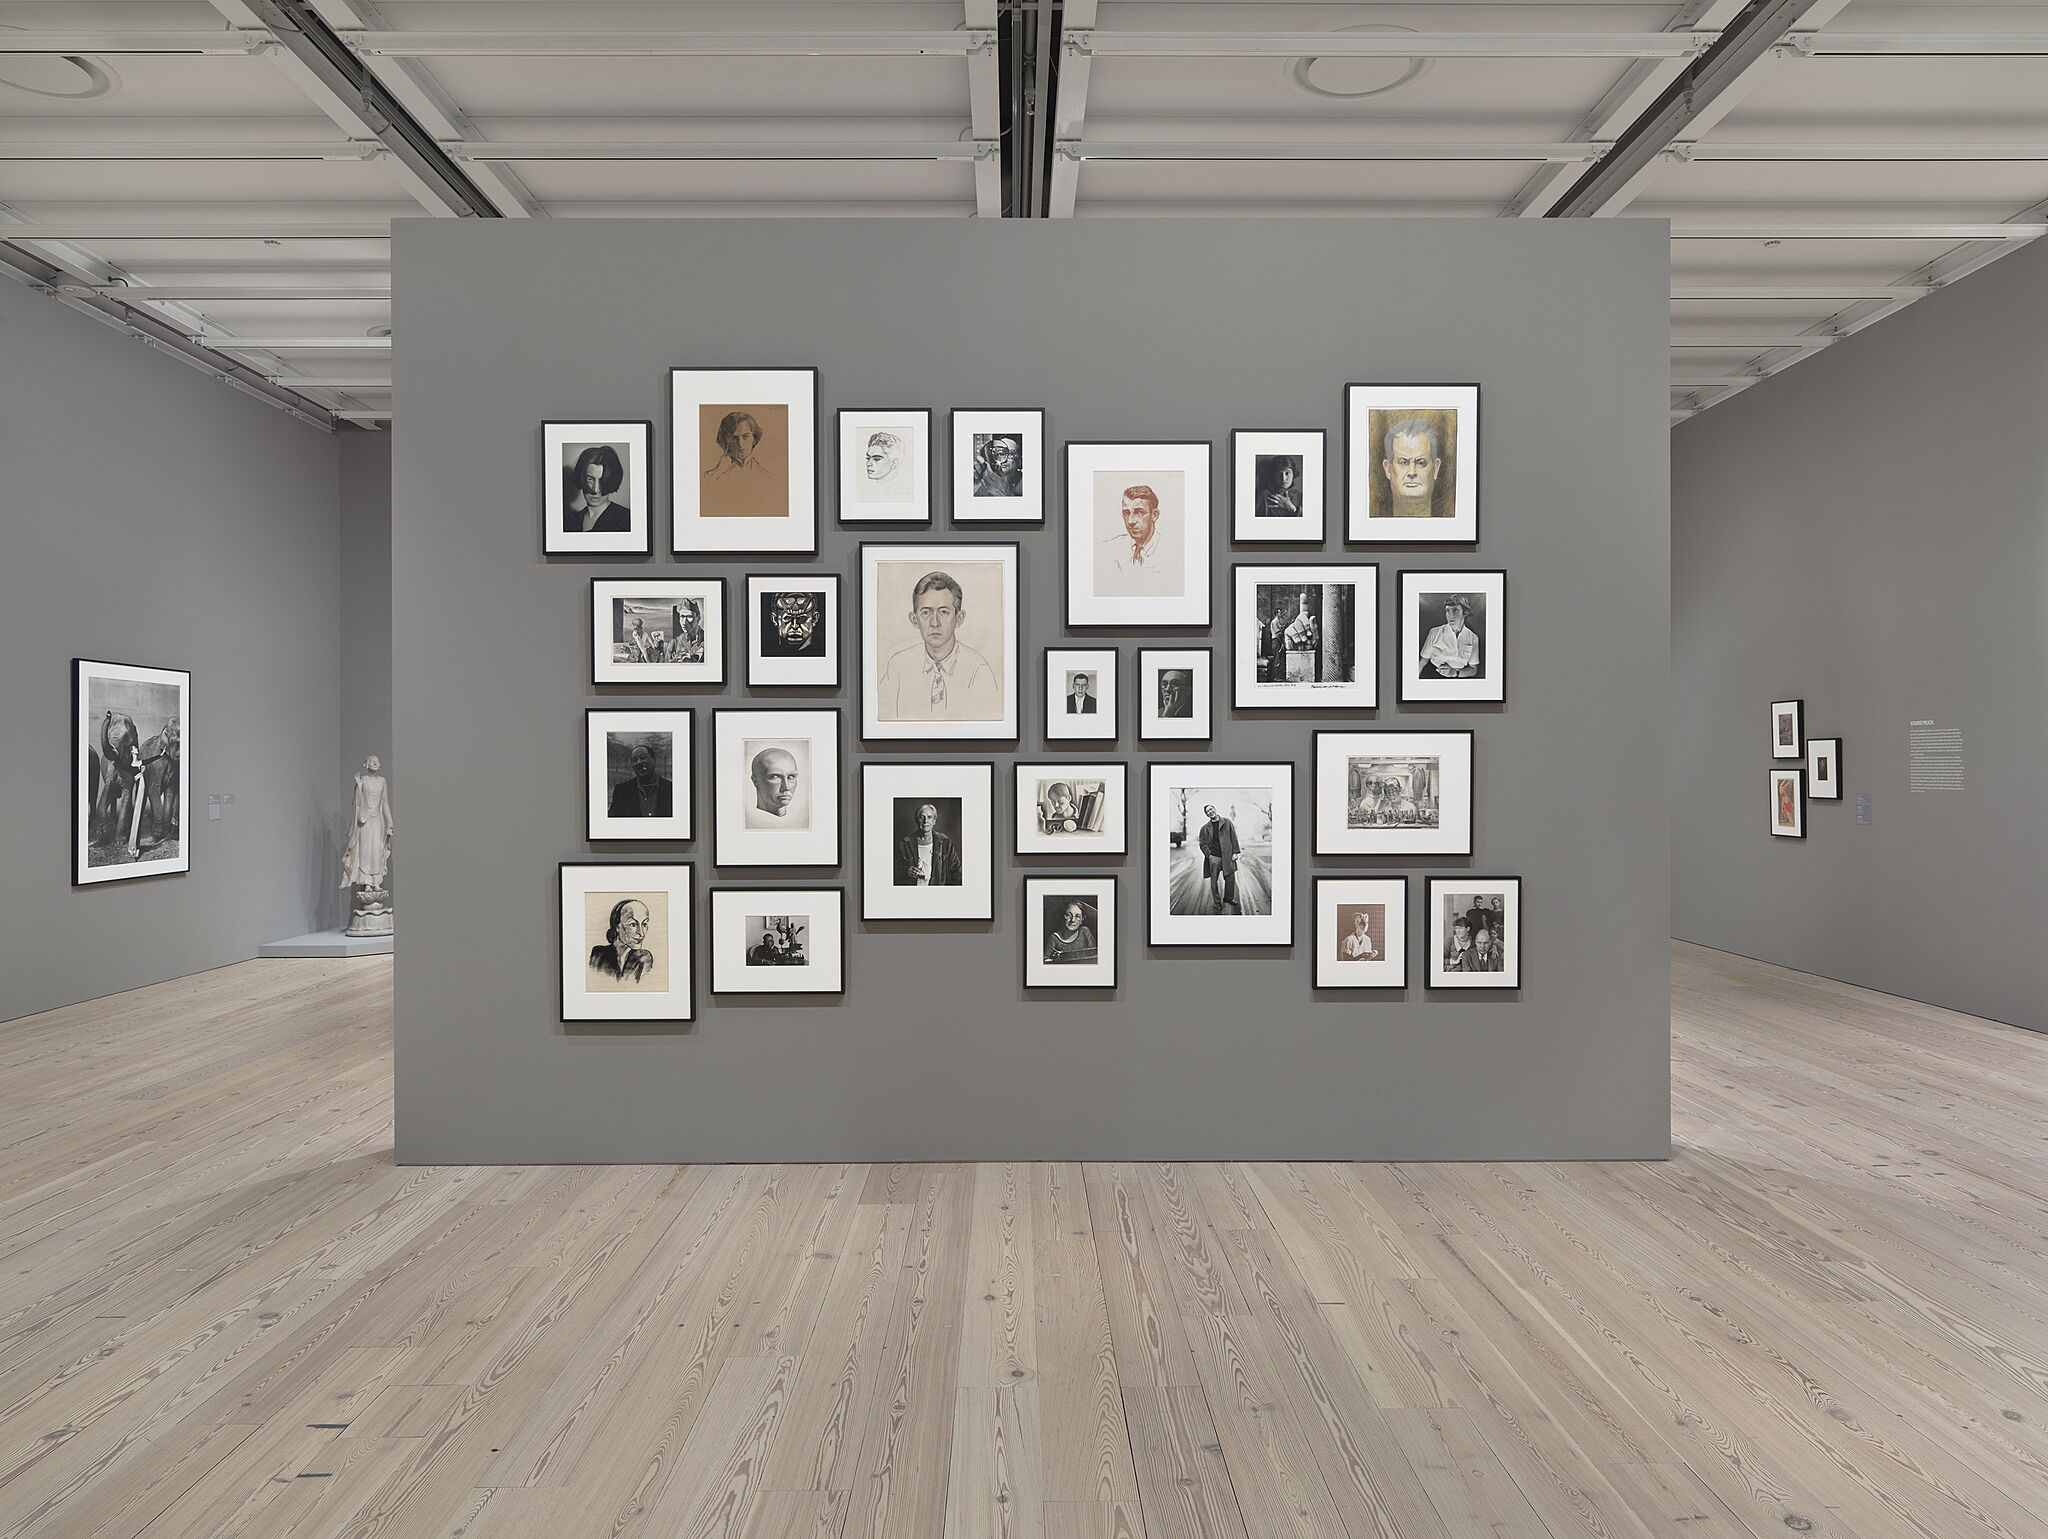 Freestanding wall in the middle of the gallery holds multiple images.